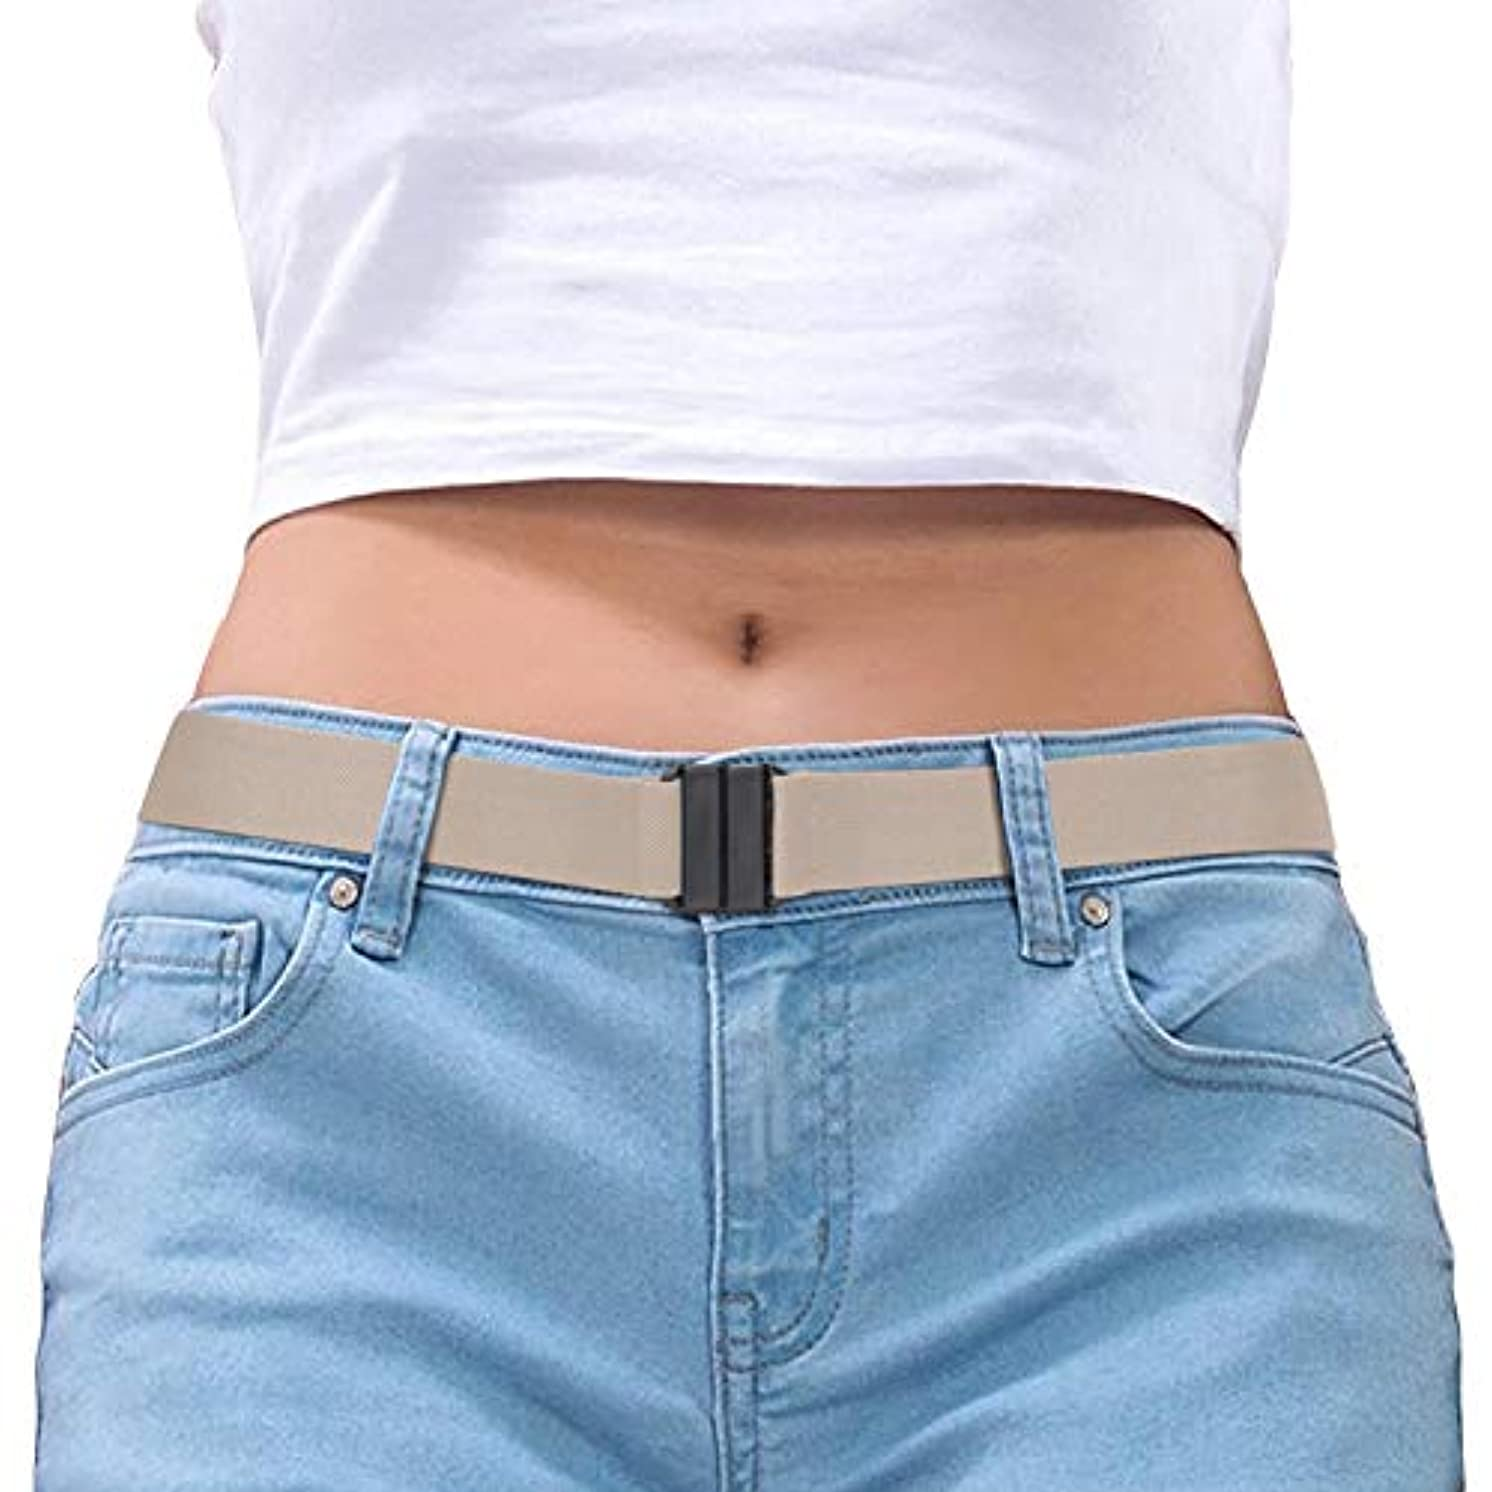 Women Invisible Belt, Comfortable Adjustable Stretch No Show Belt with Flat Buckle By SUOSDEY